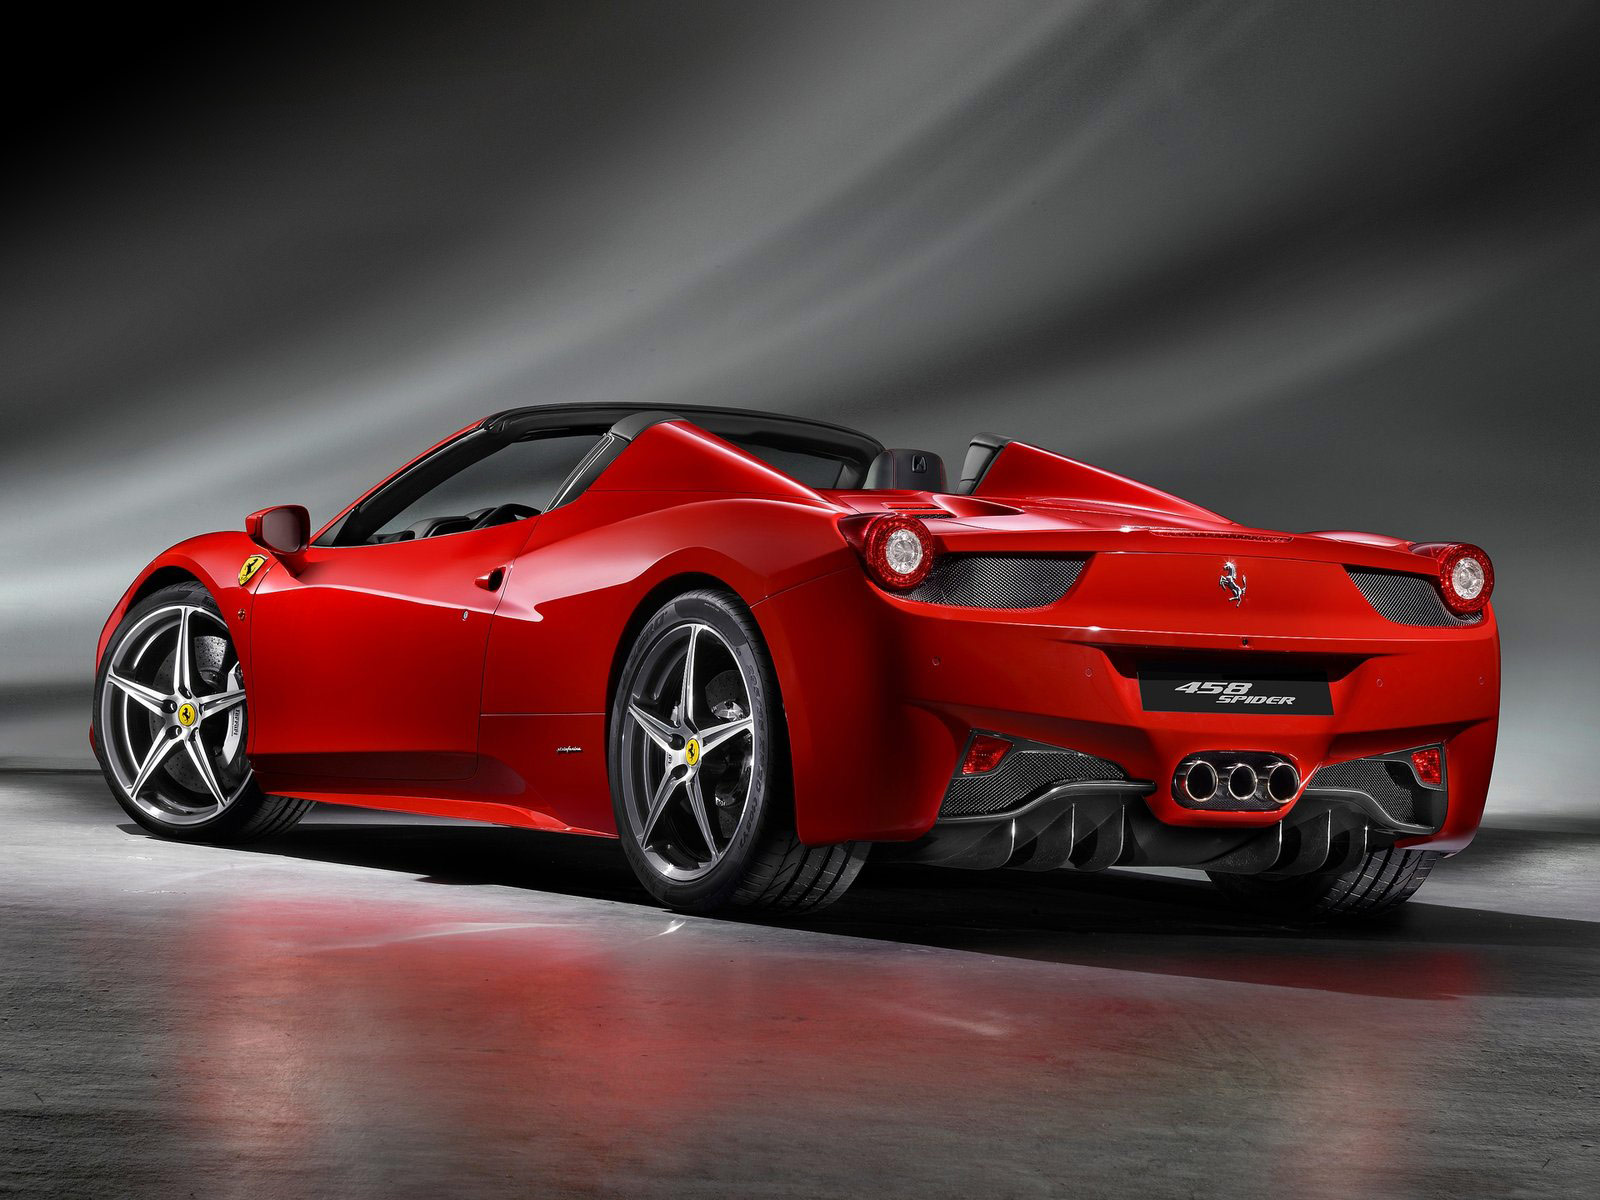 Ferrari Cars 19 High Resolution Wallpaper